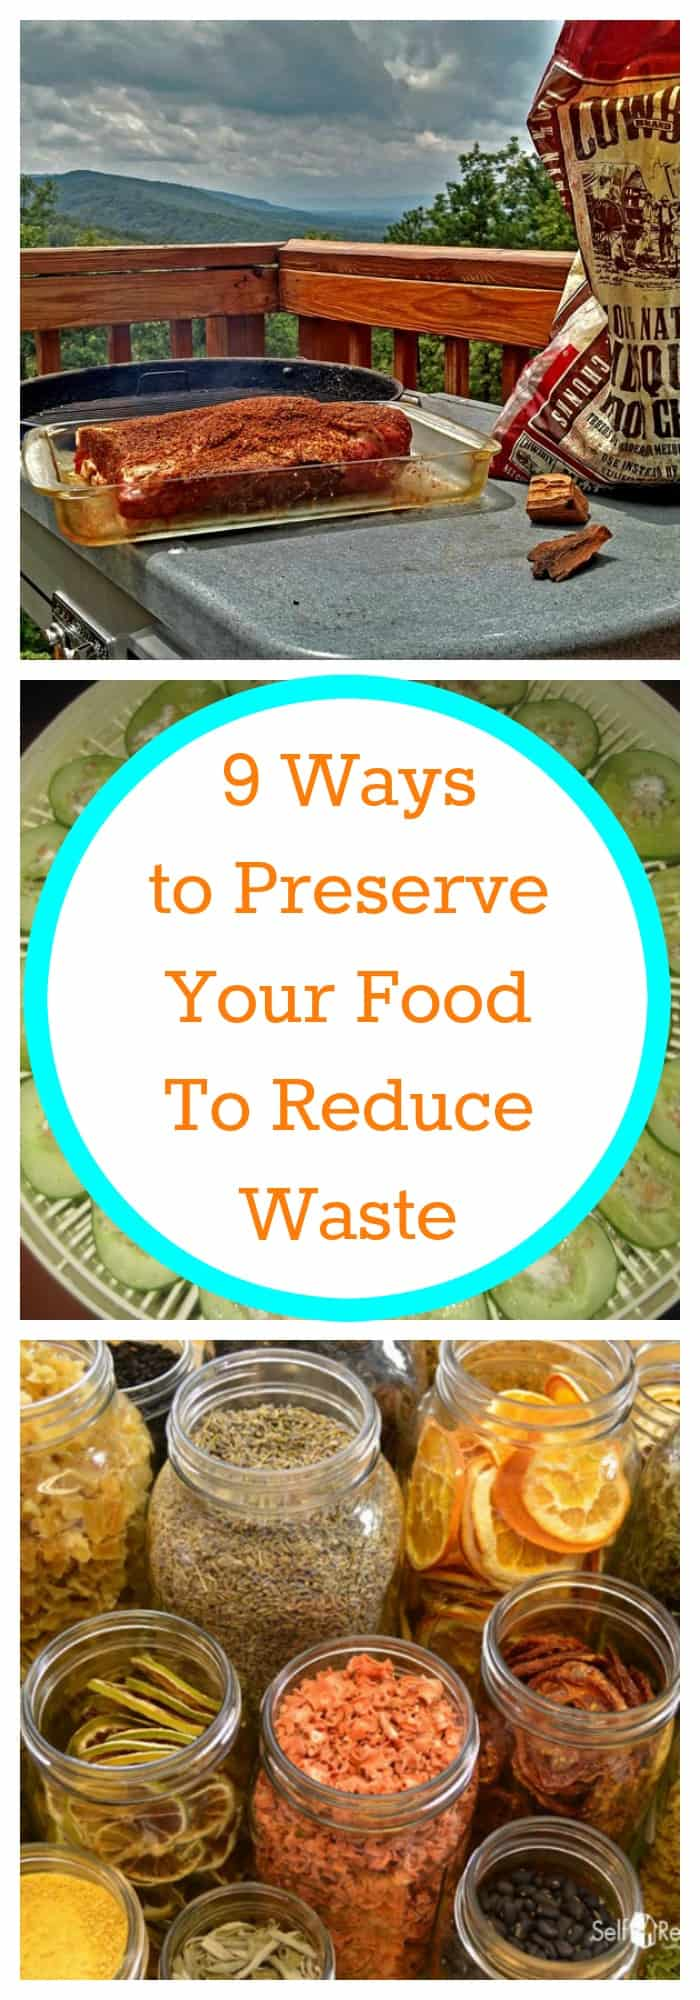 9 ways to preserve your food to reduce waste the organized mom food 9 ways to preserve your food to reduce waste the organized forumfinder Choice Image